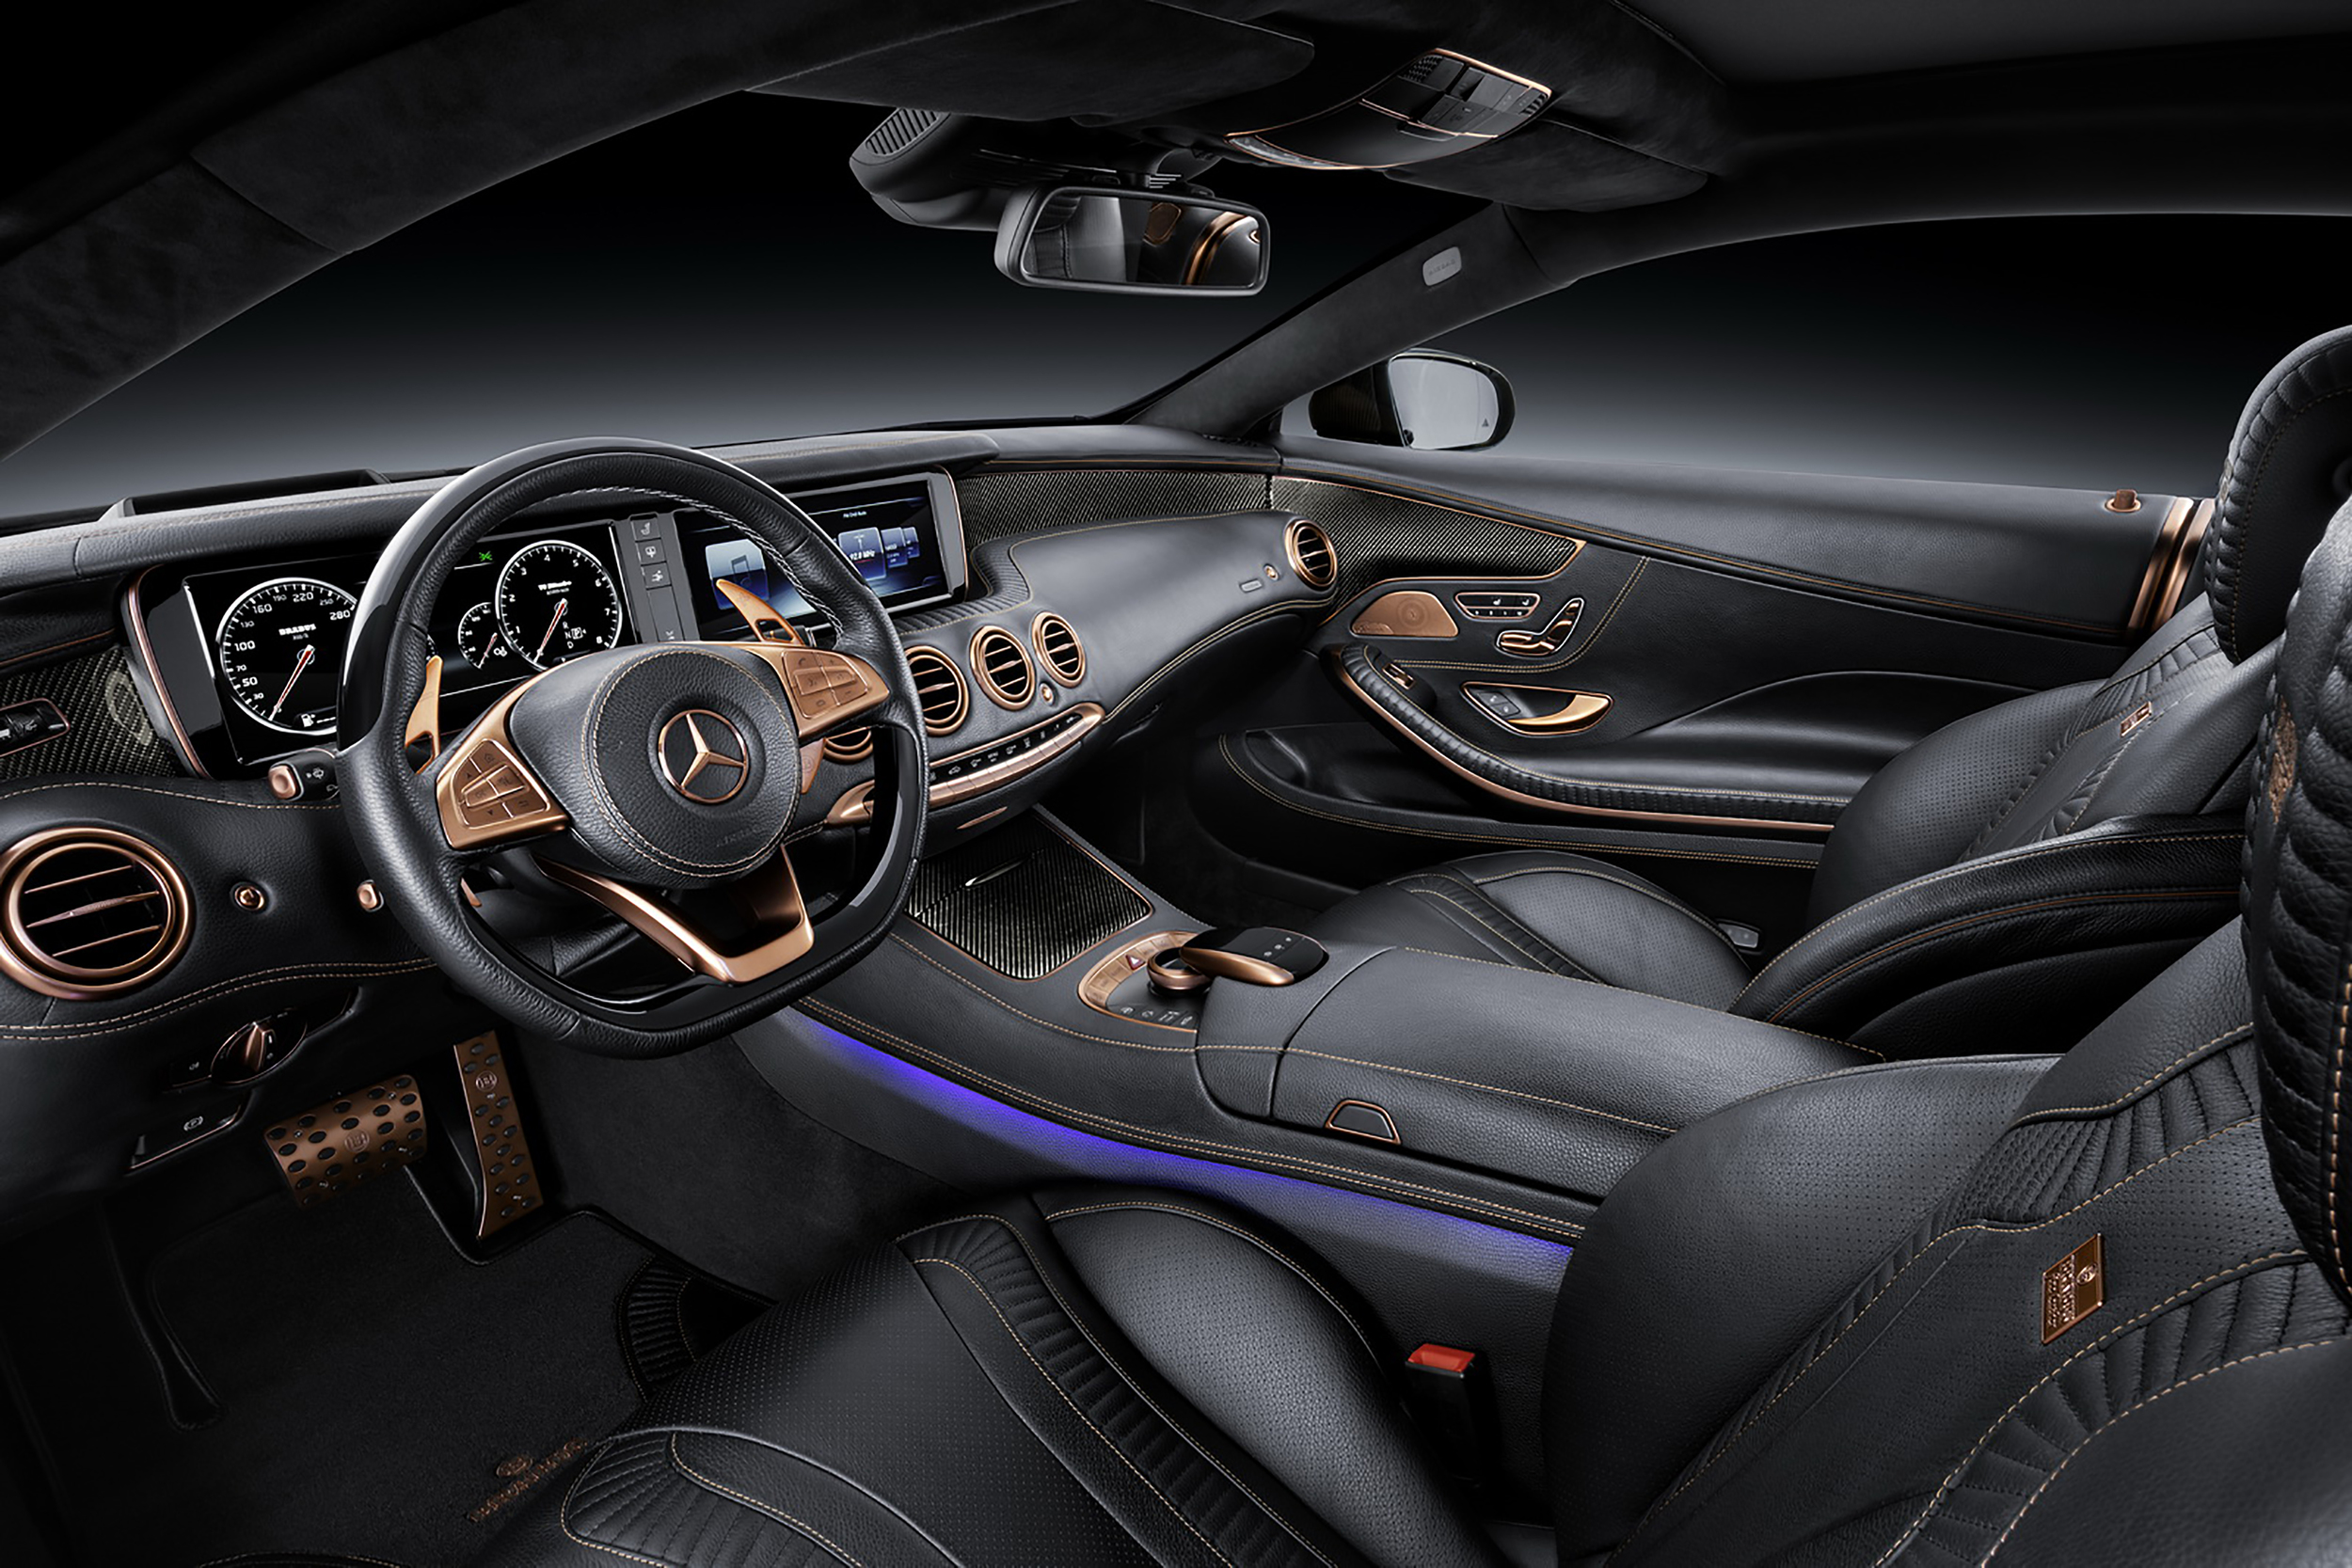 ' ' from the web at 'http://www.blogcdn.com/slideshows/images/slides/335/946/5/S3359465/slug/l/brabus-s-class-coupe-04-1.jpg'